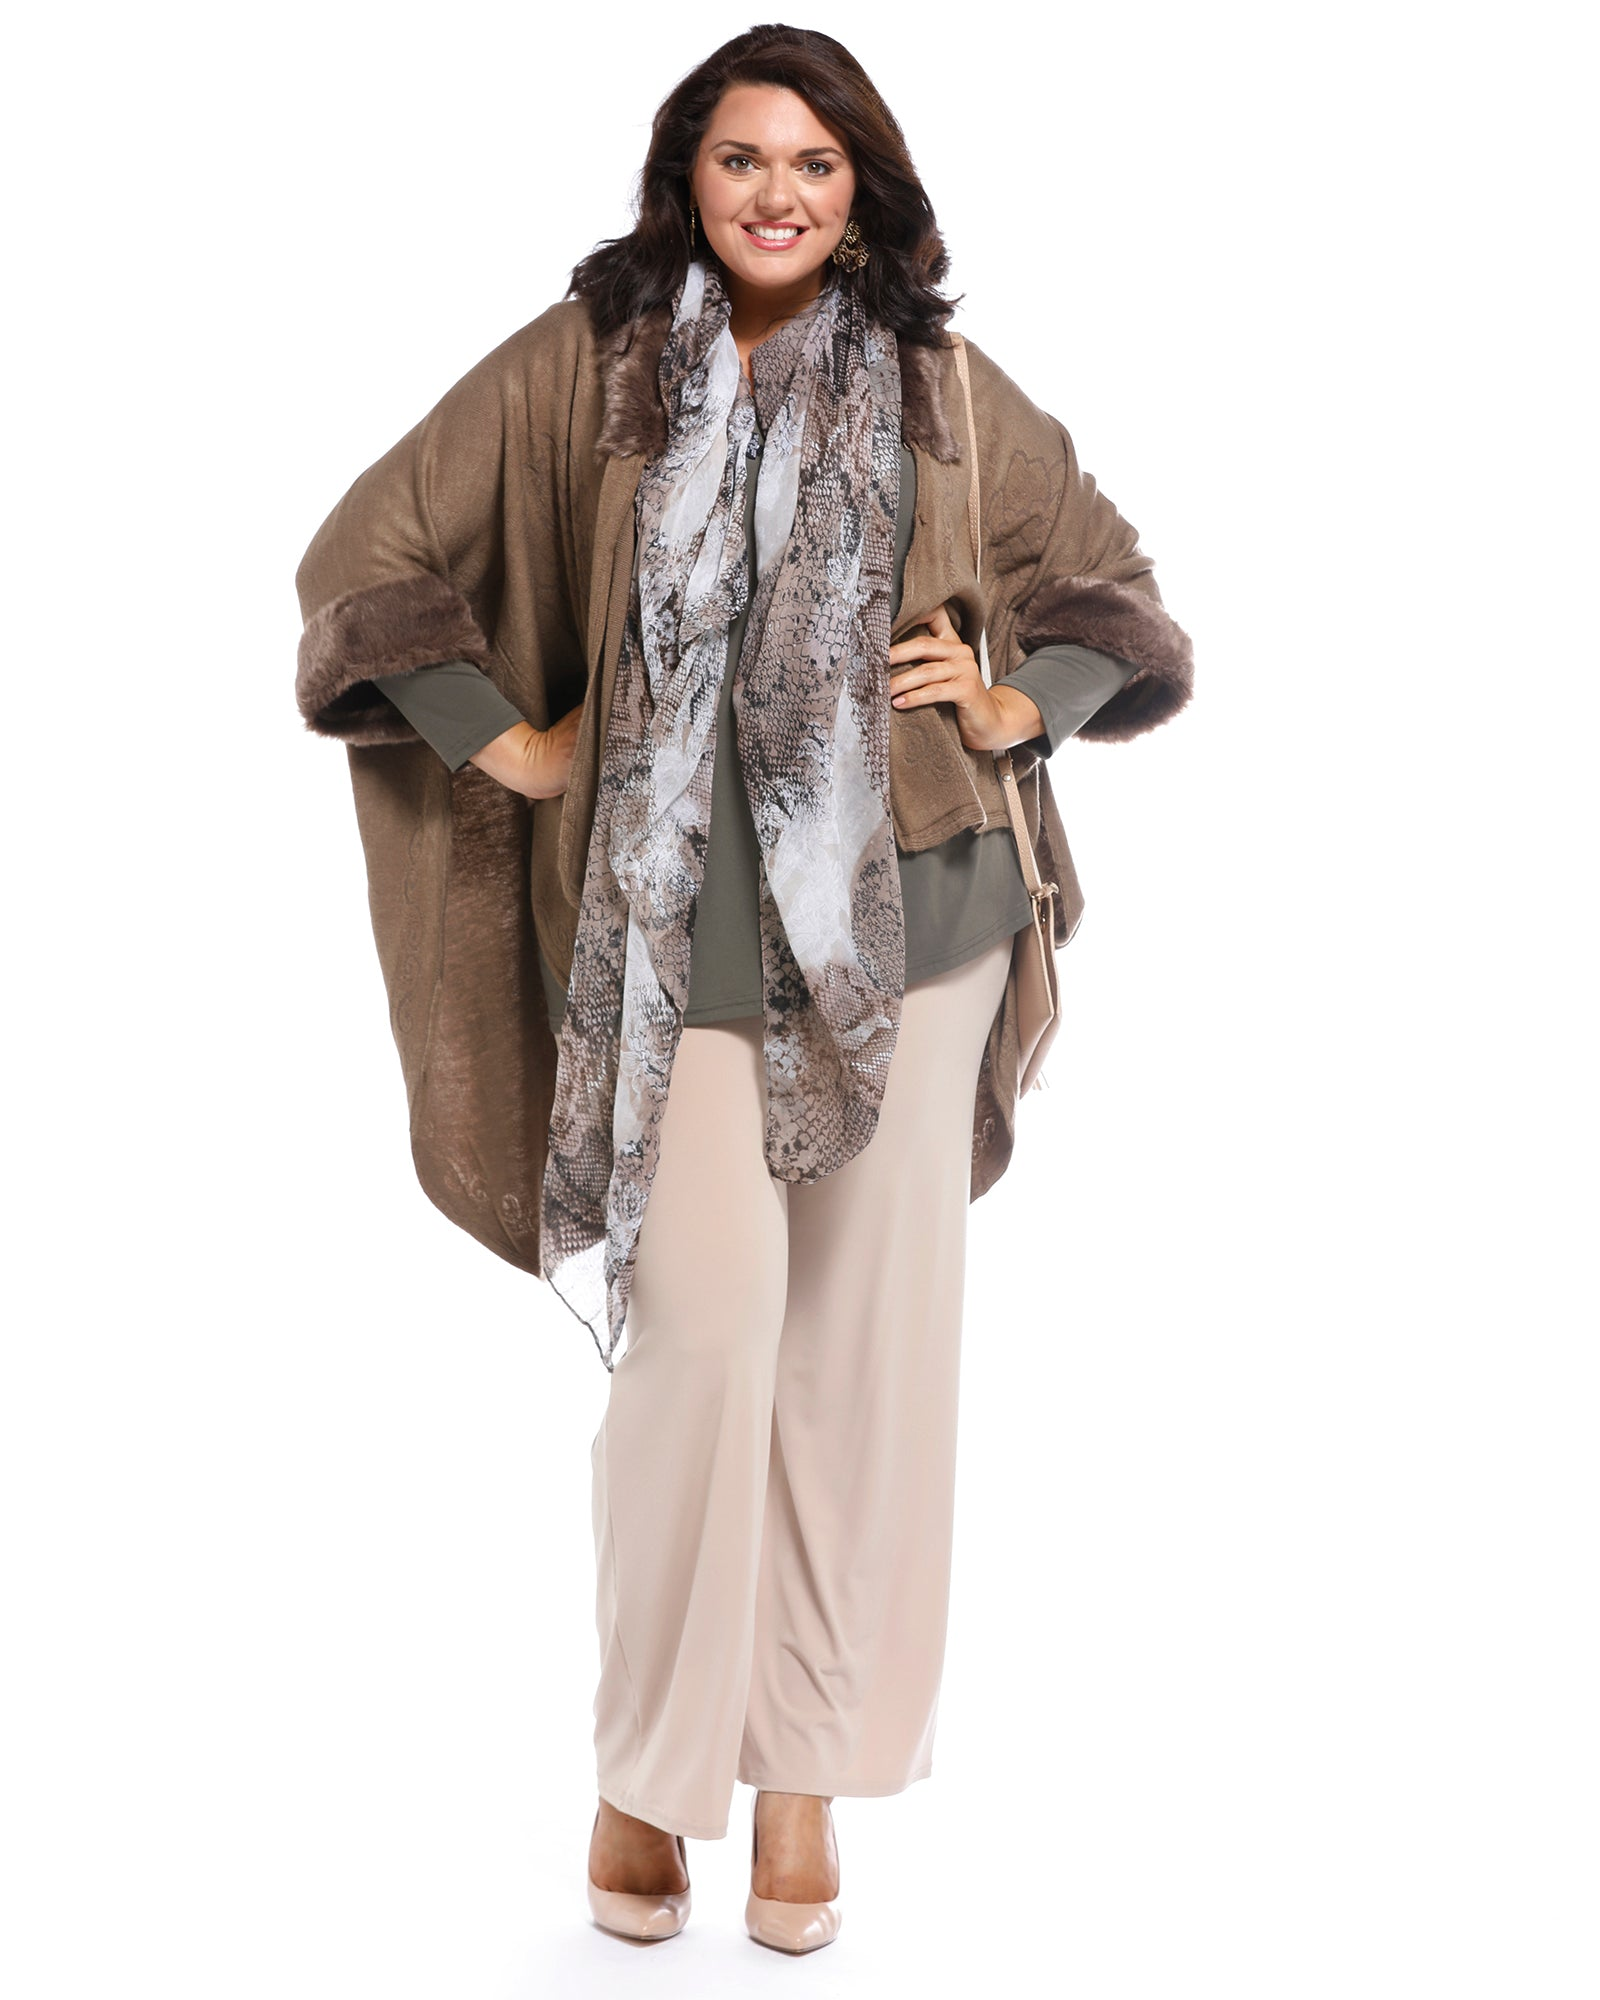 Super Soft Knit Cover Up with Fur Trim - Brown